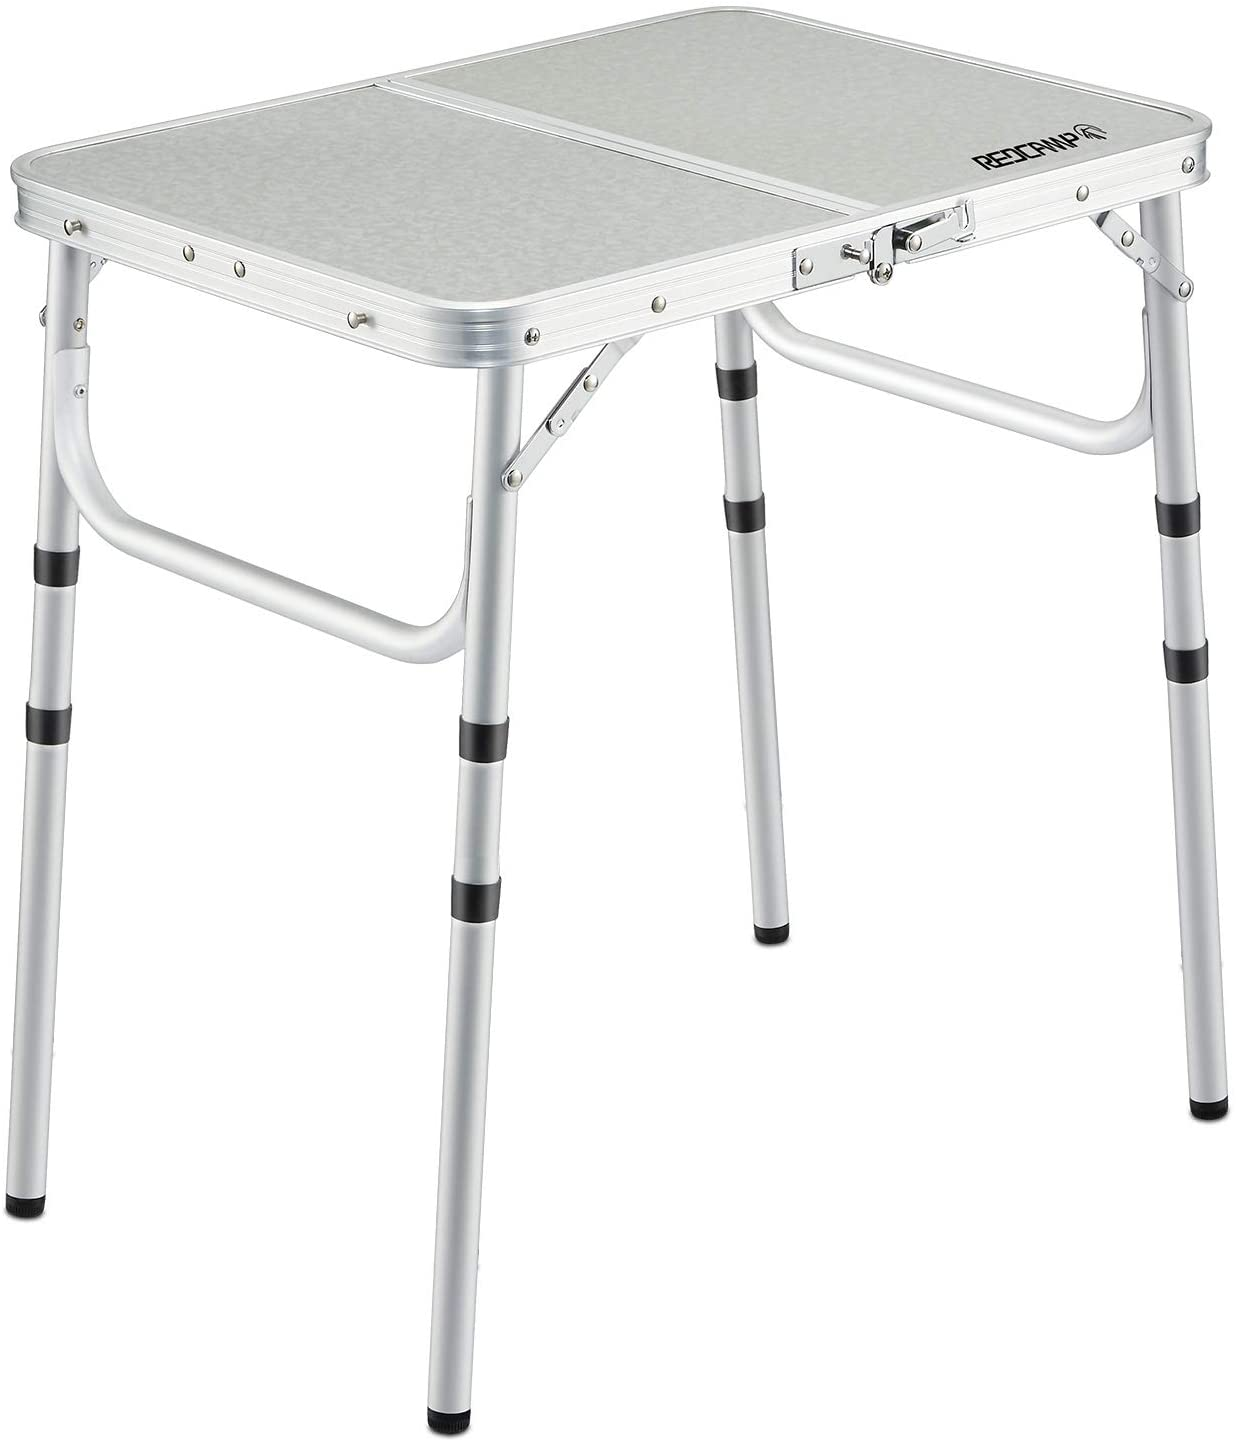 - Amazon.com: REDCAMP Small Folding Table 2 Foot, Adjustable Height